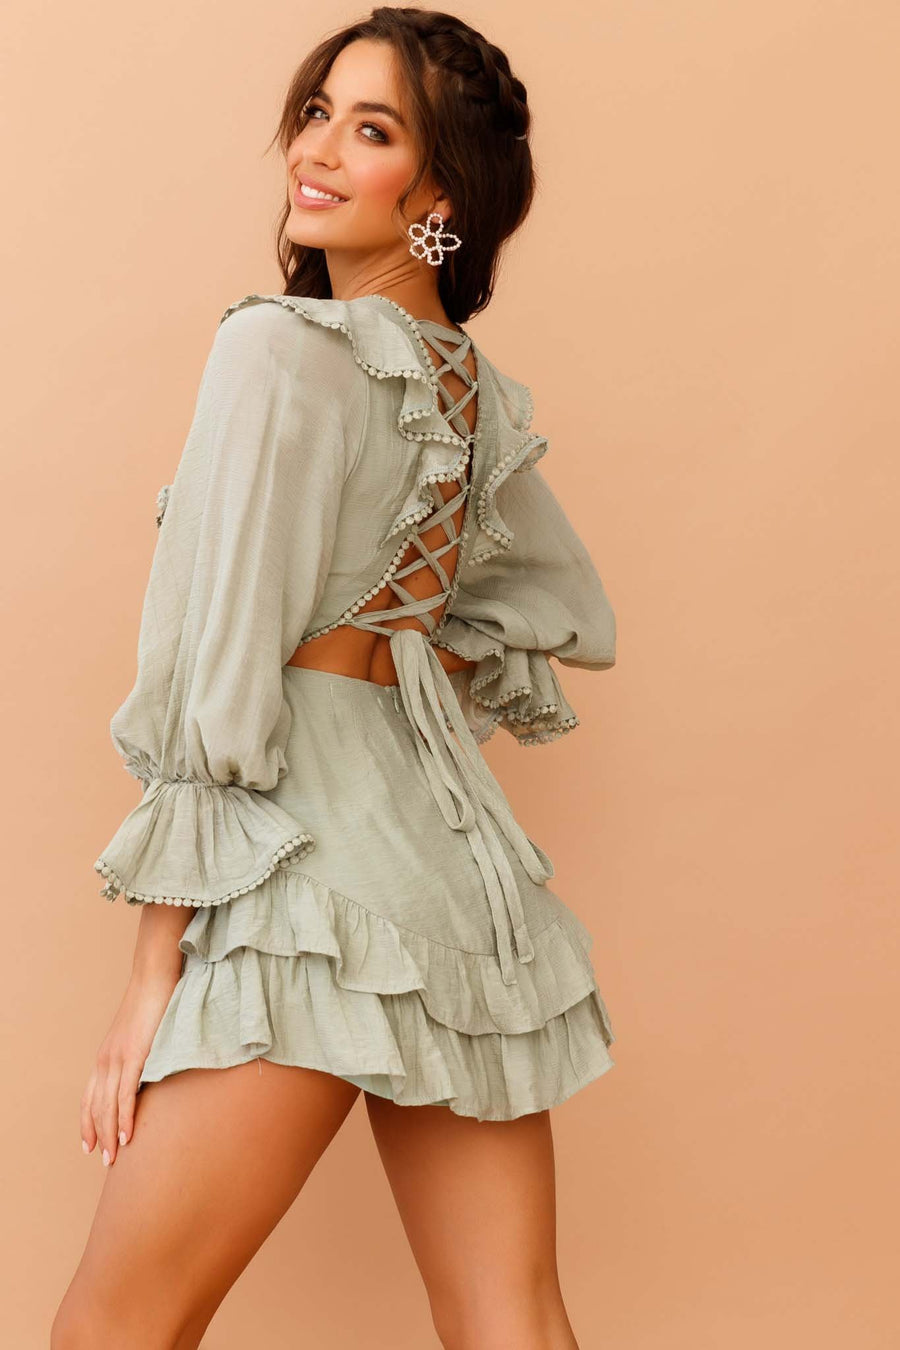 Ruffled Up Mini Dress // Olive